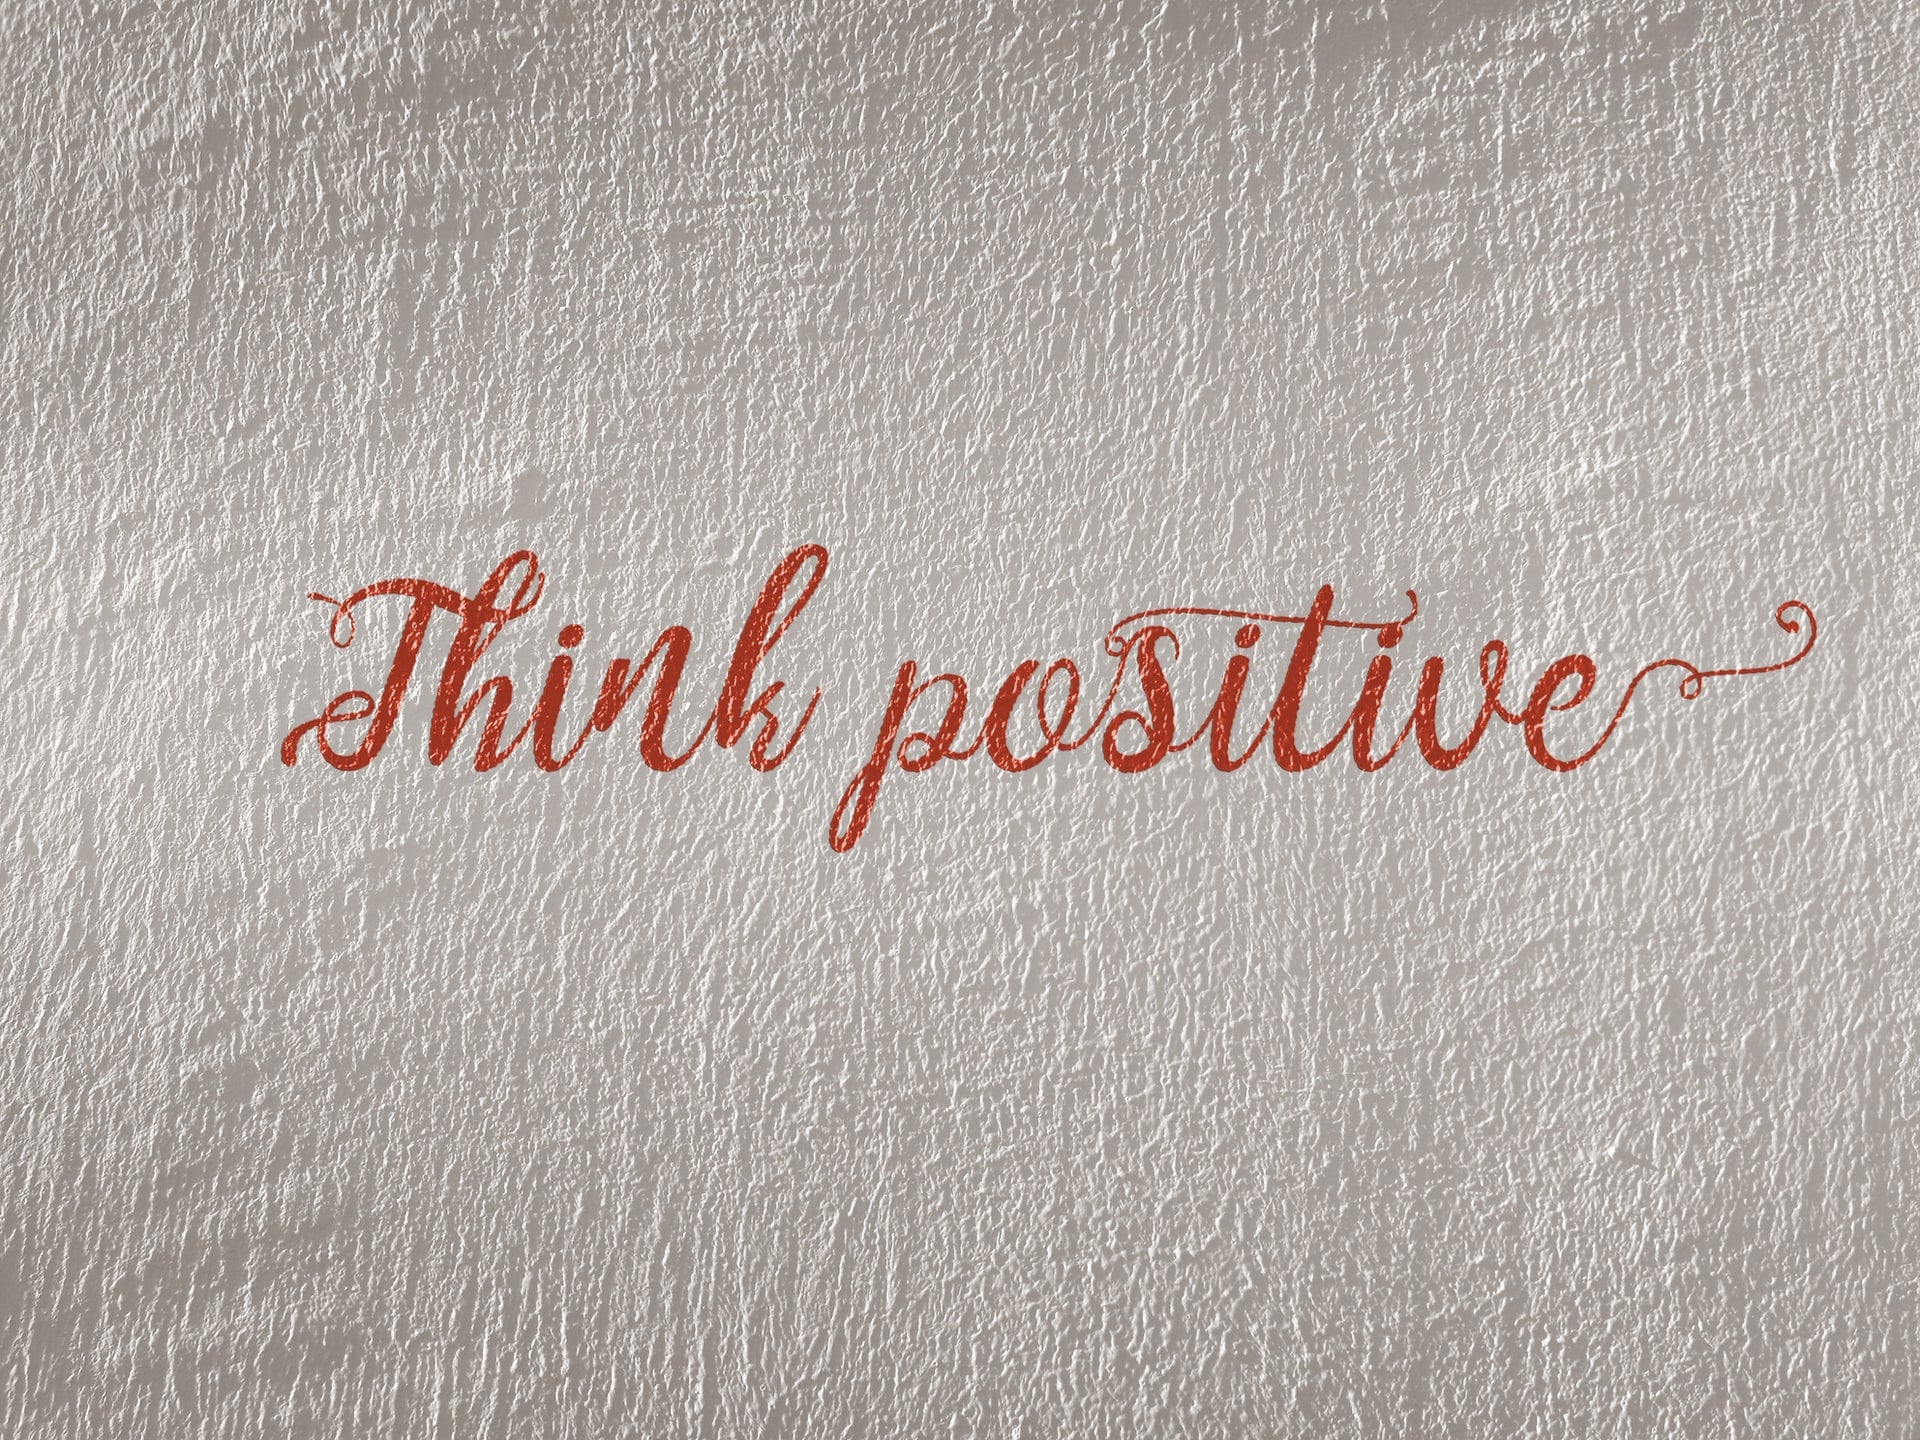 What Are Positive Affirmations?